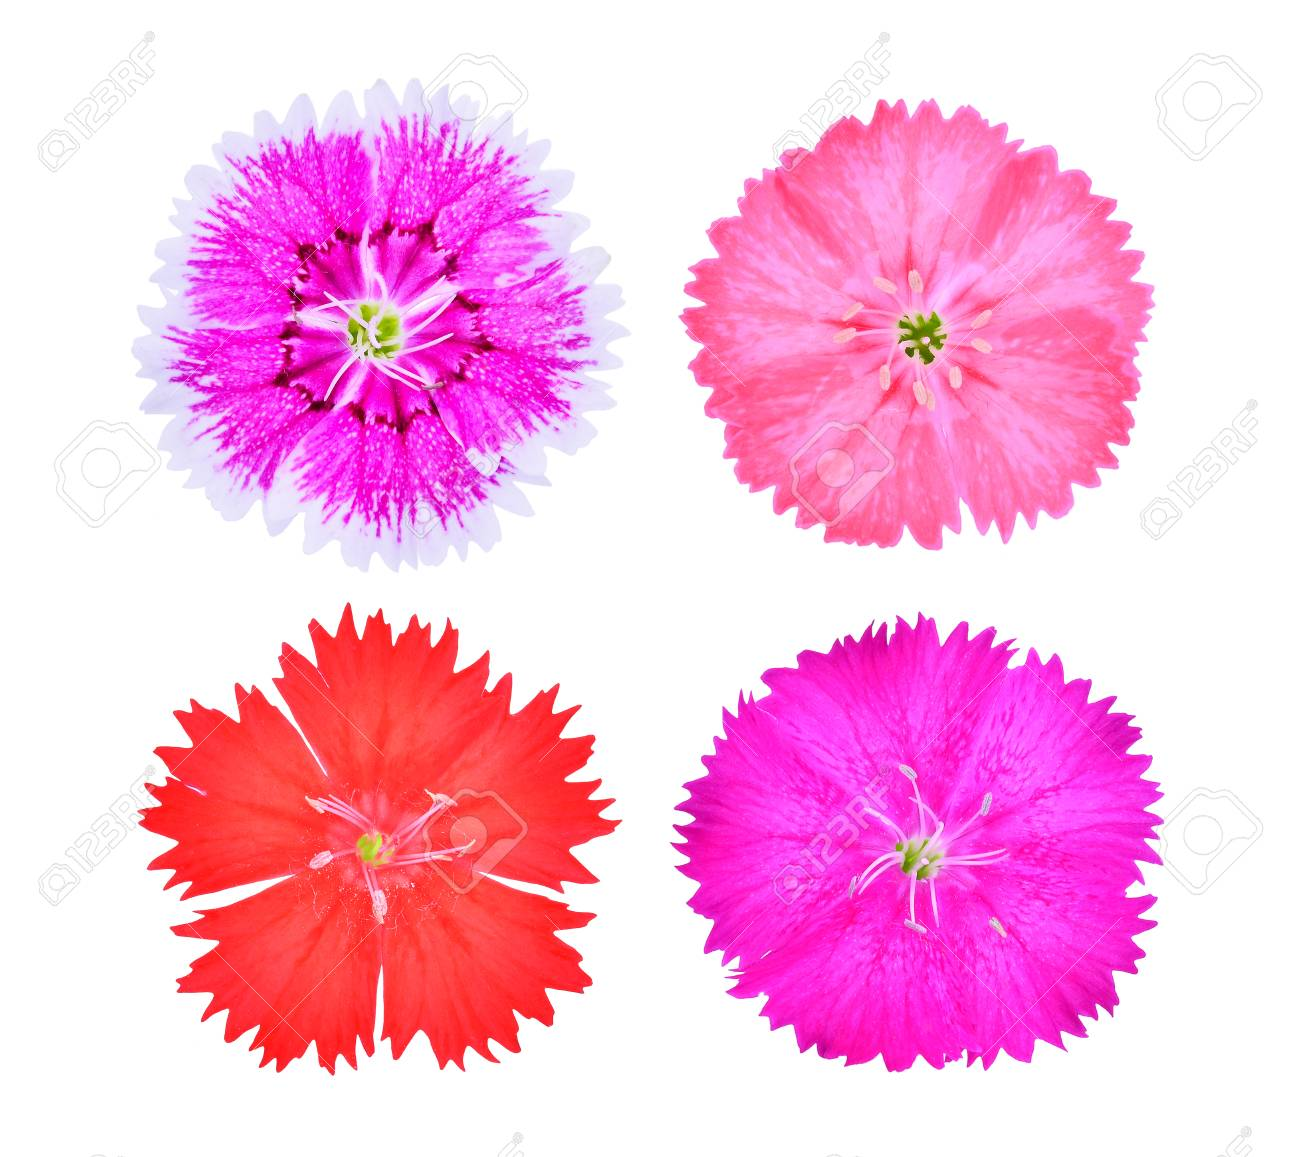 Dianthus Flowerchina Pink Indian Pink Isolated On White